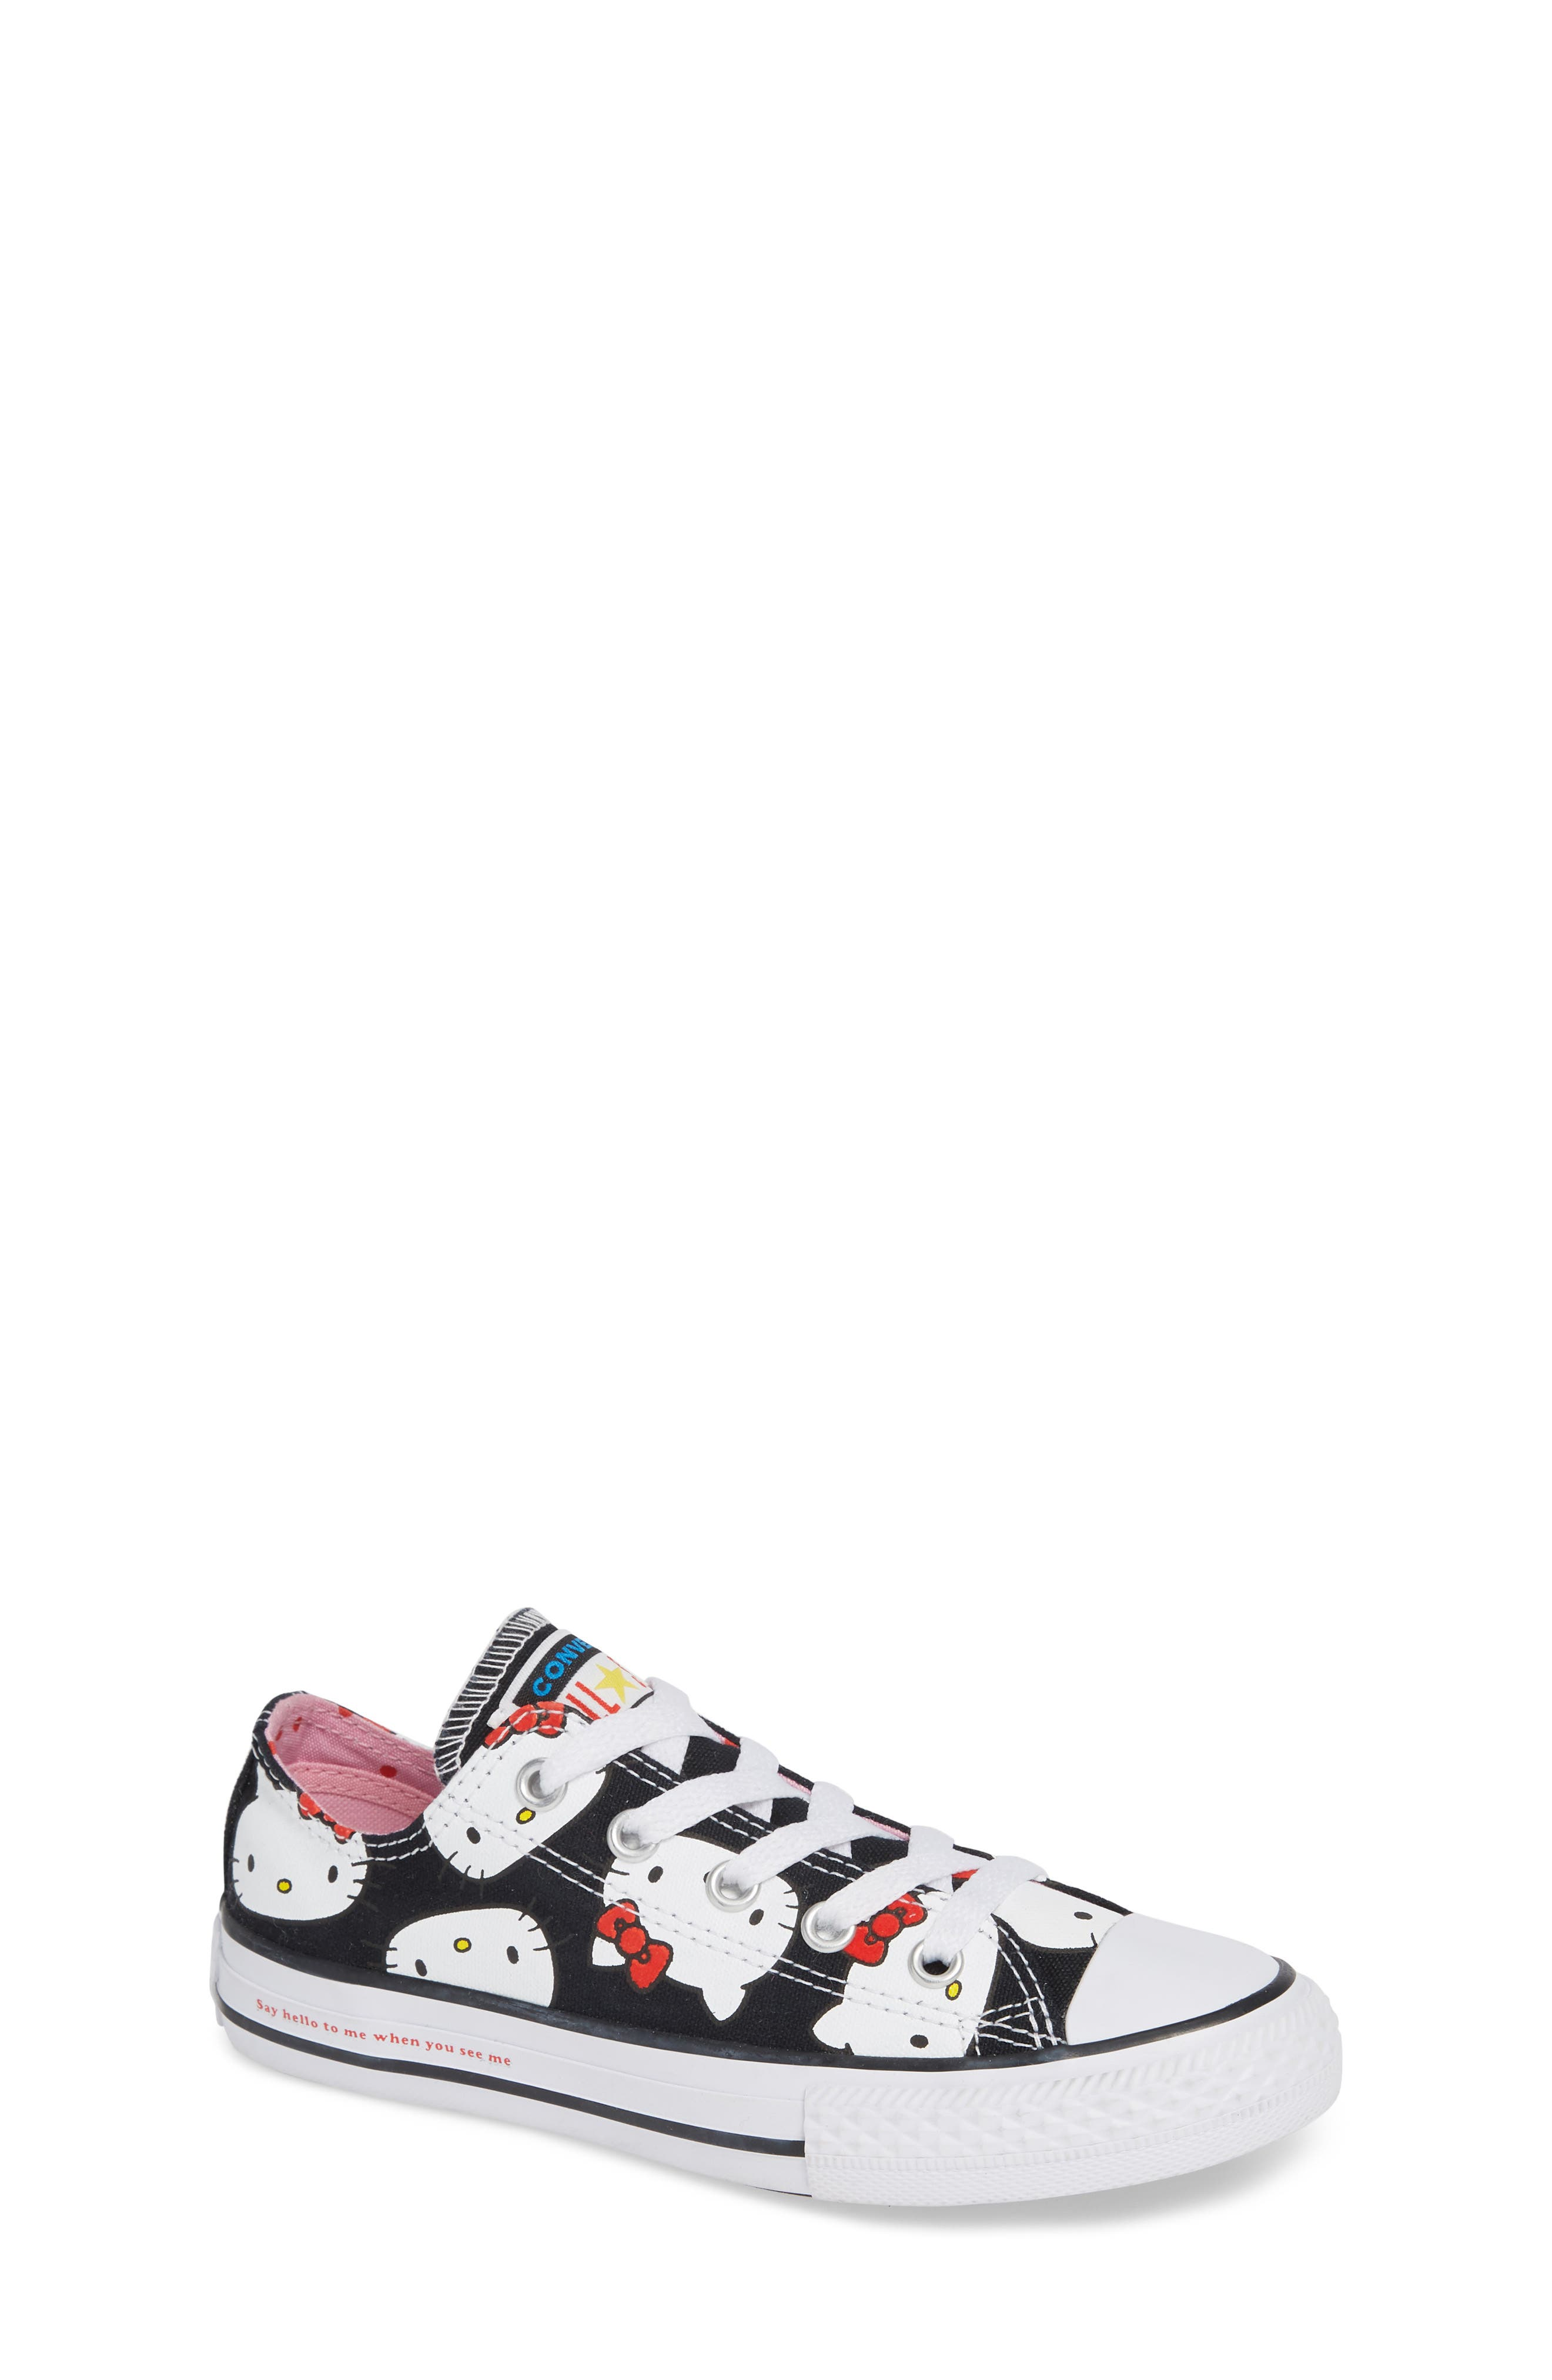 Chuck Taylor<sup>®</sup> All Star<sup>®</sup> Hello Kitty<sup>®</sup> Sneaker,                         Main,                         color, BLACK